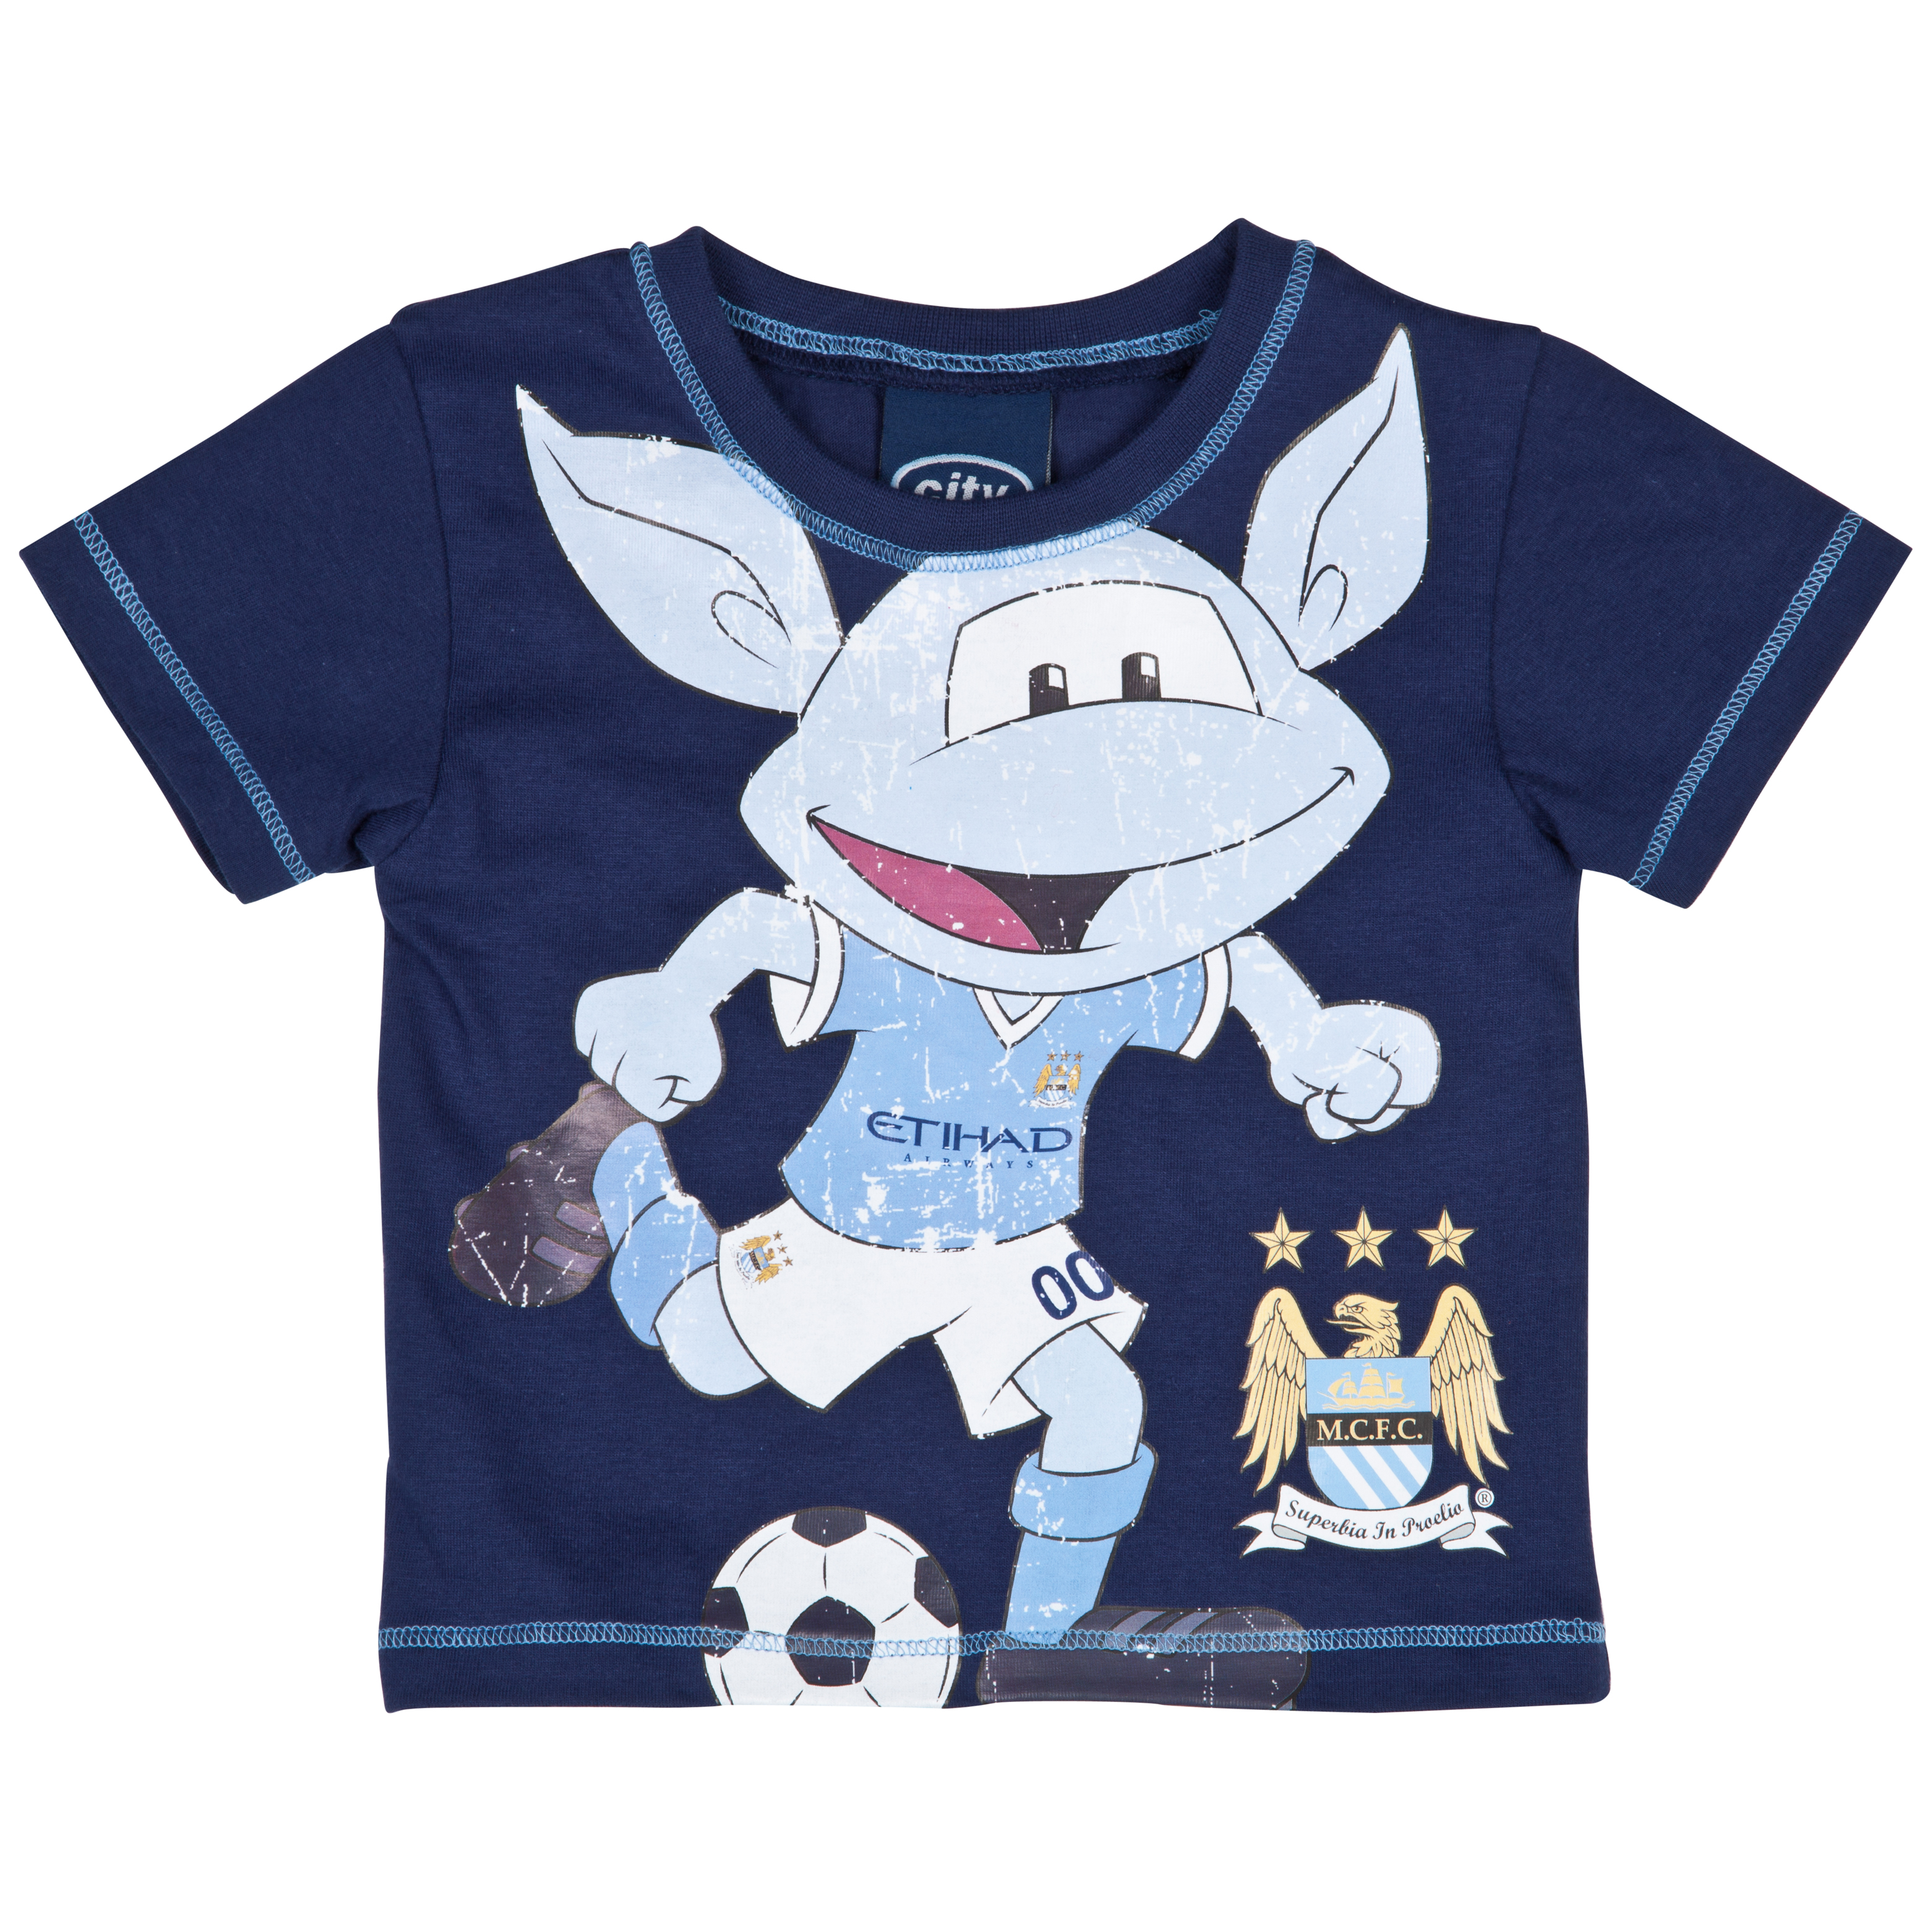 Manchester City Moony T-Shirt - Navy/Sky - Baby